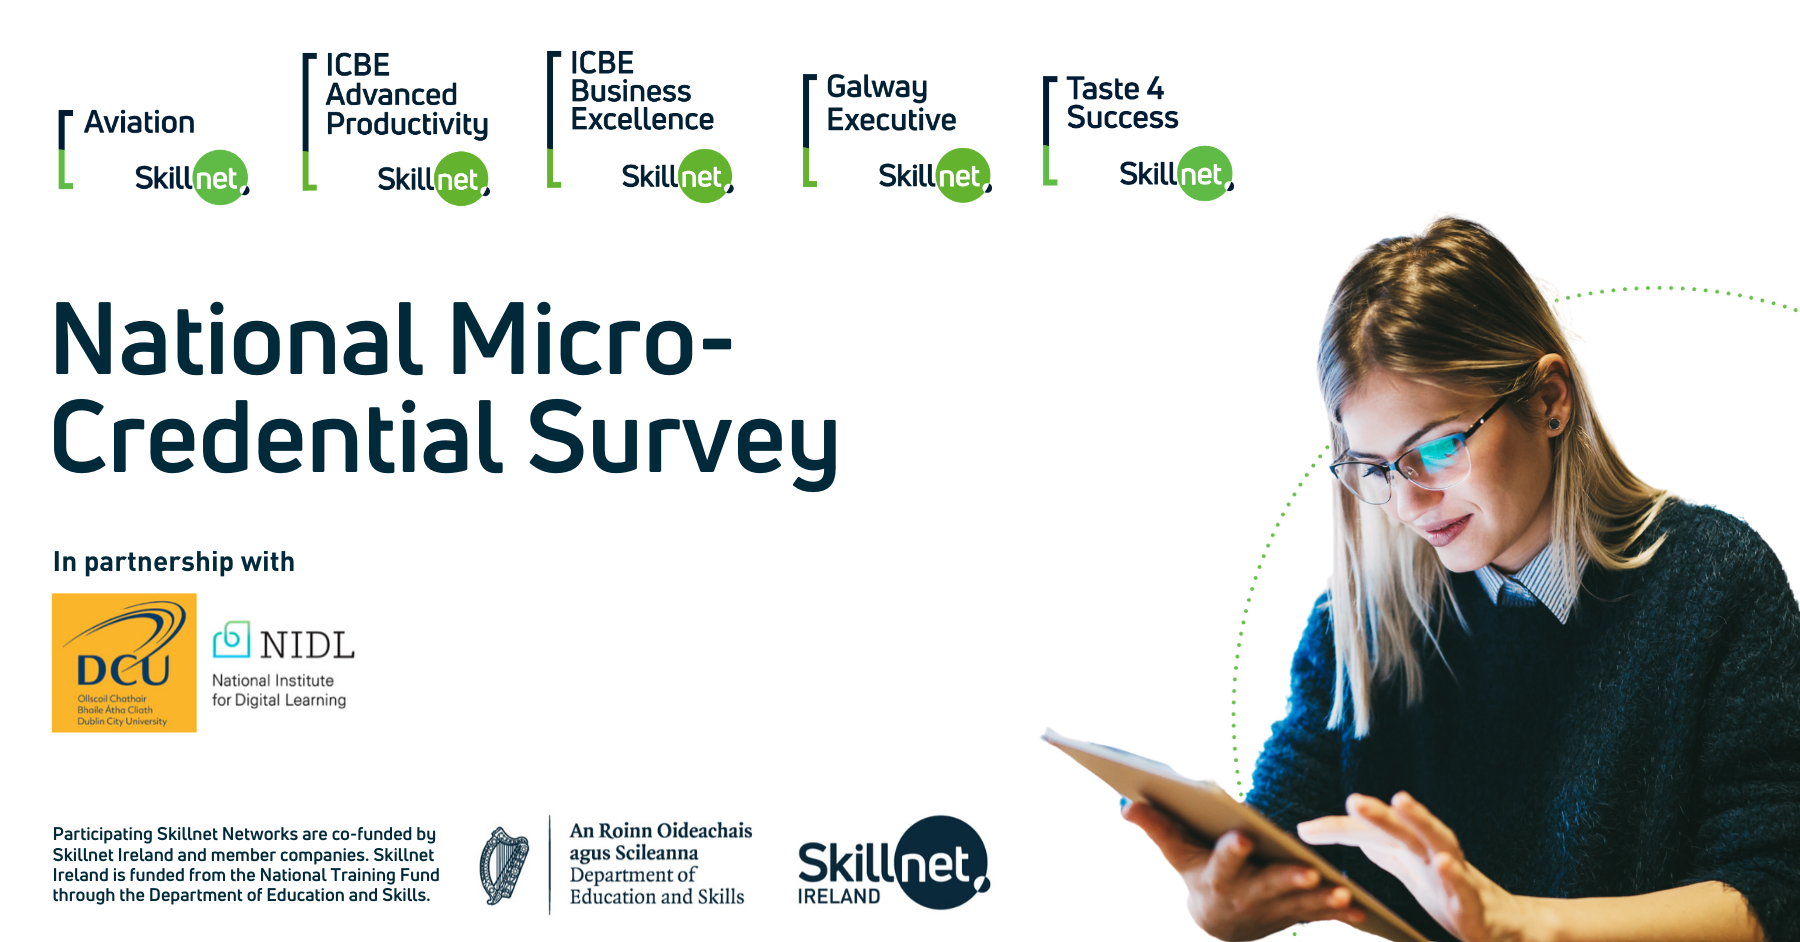 National Micro-Credential Survey - social and digital image.png